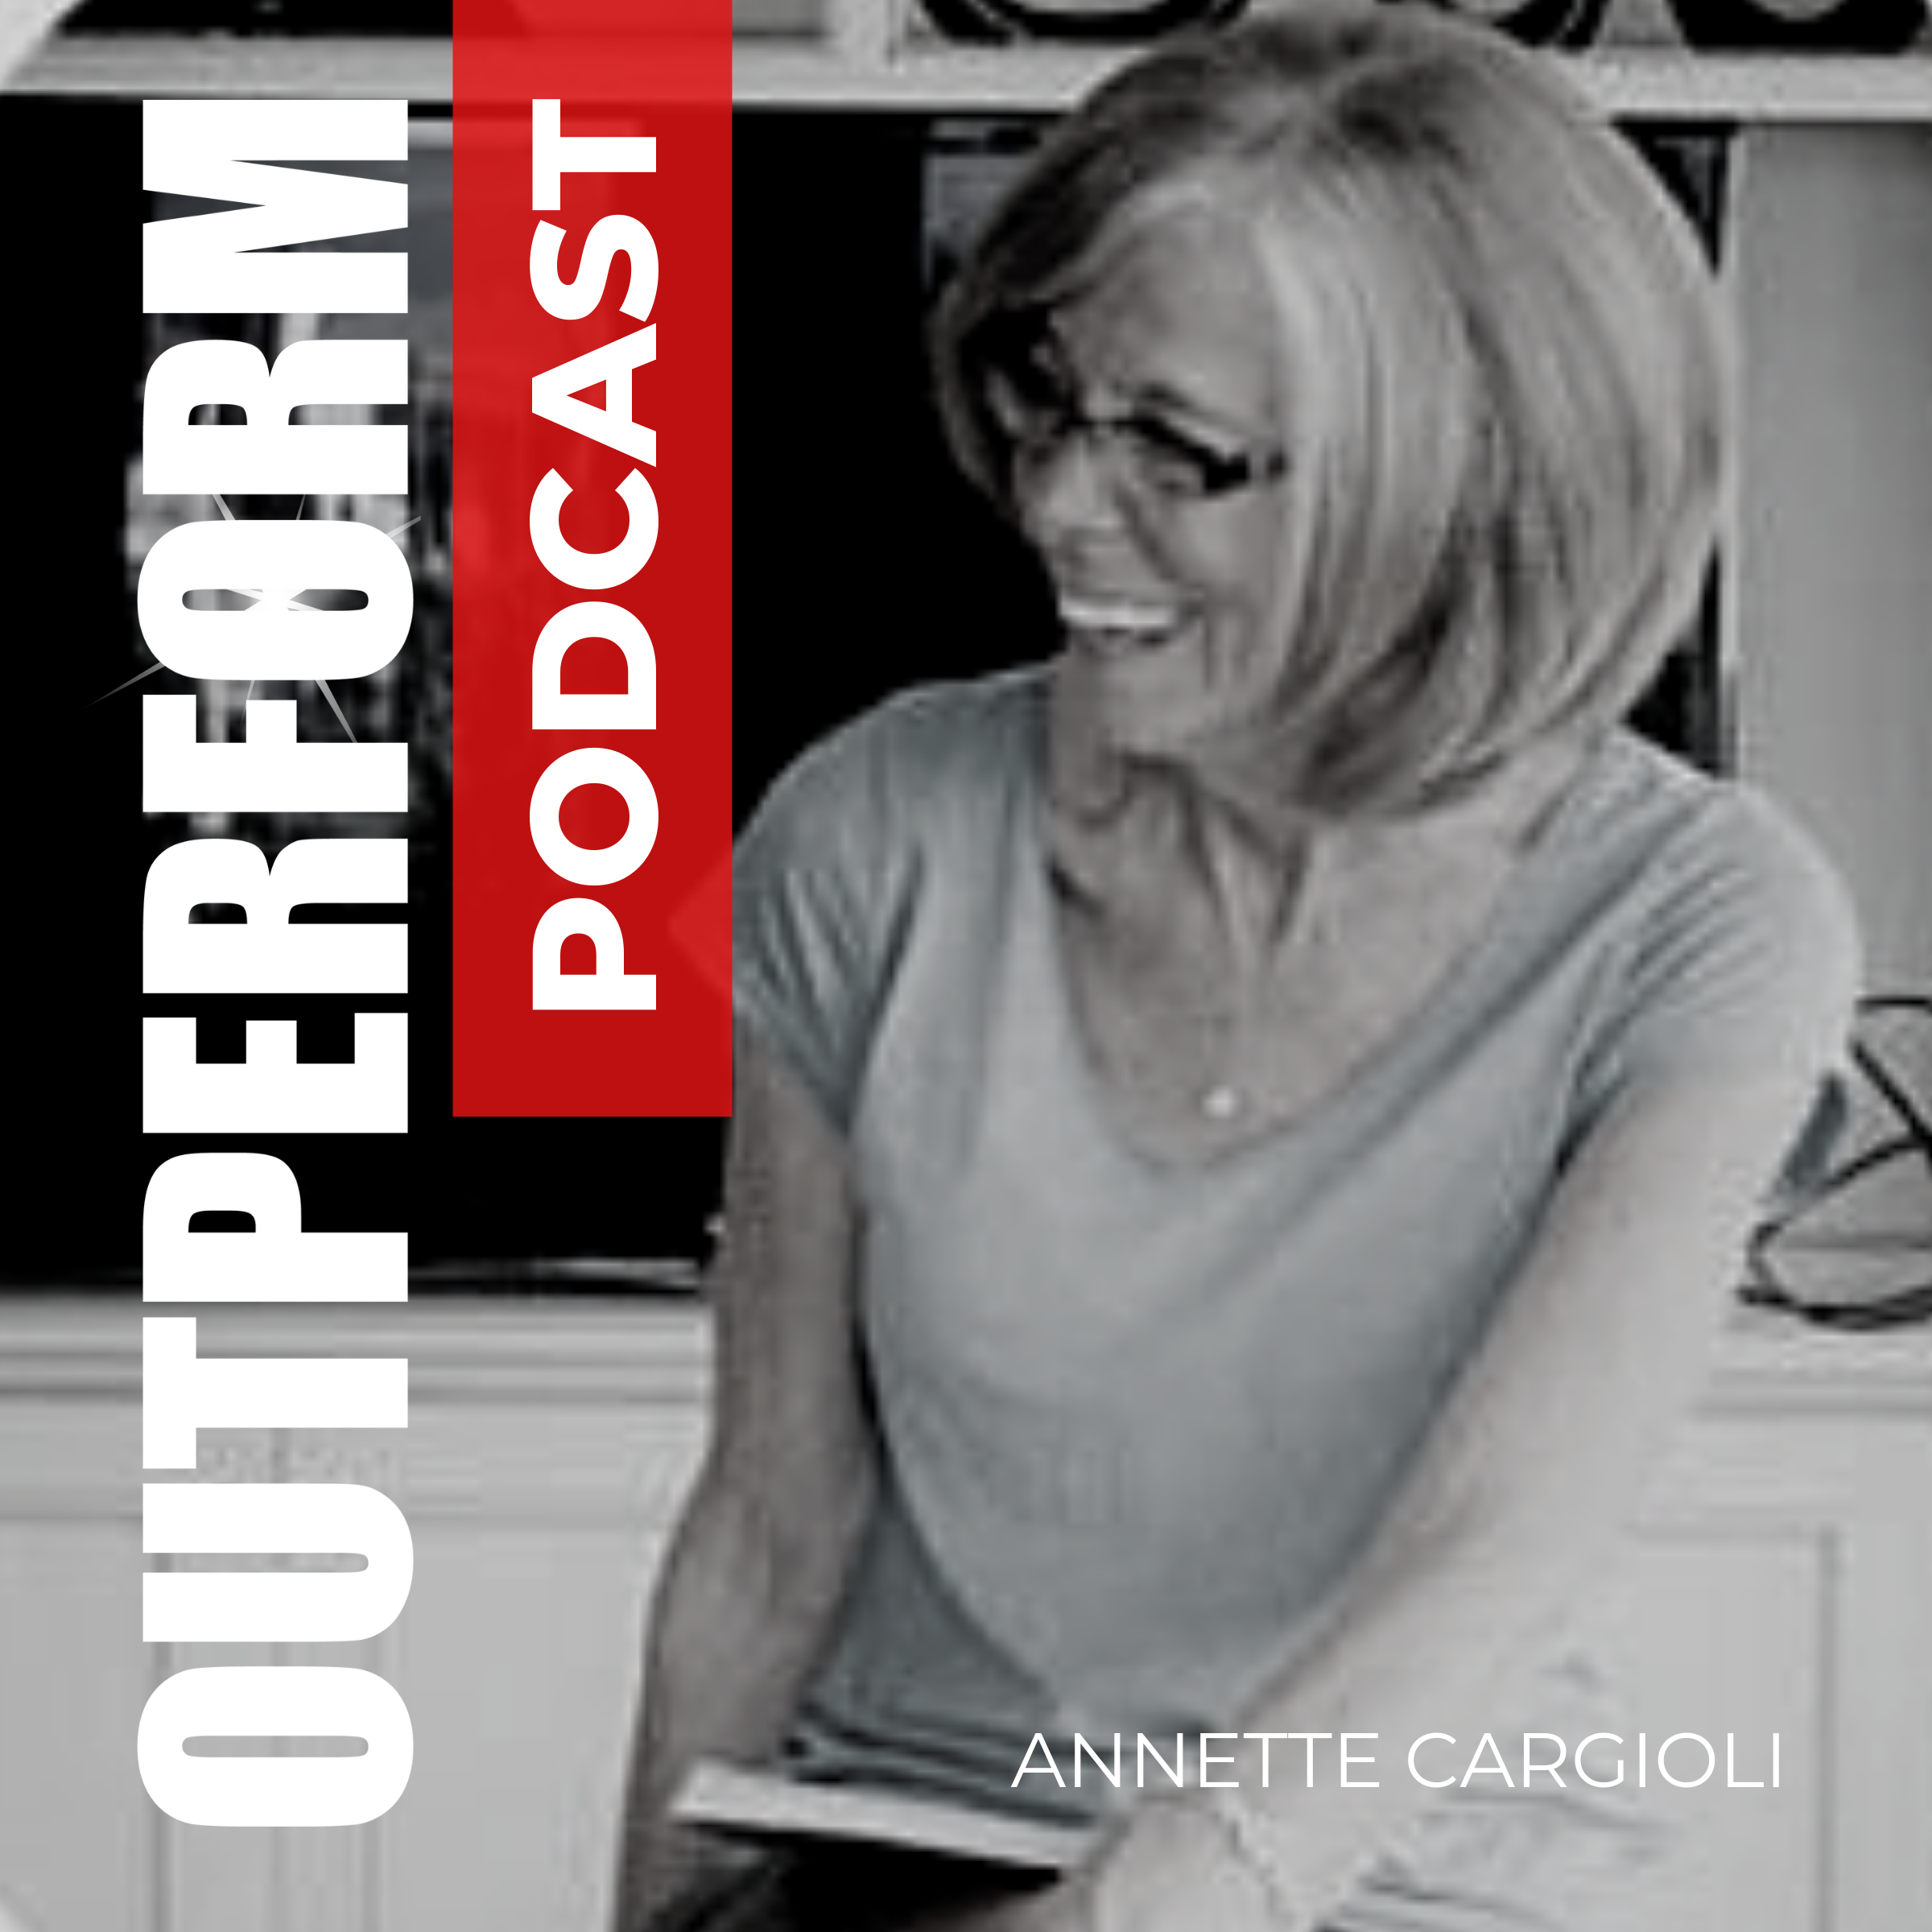 Annette Cargioli: The Forgiveness Doctor